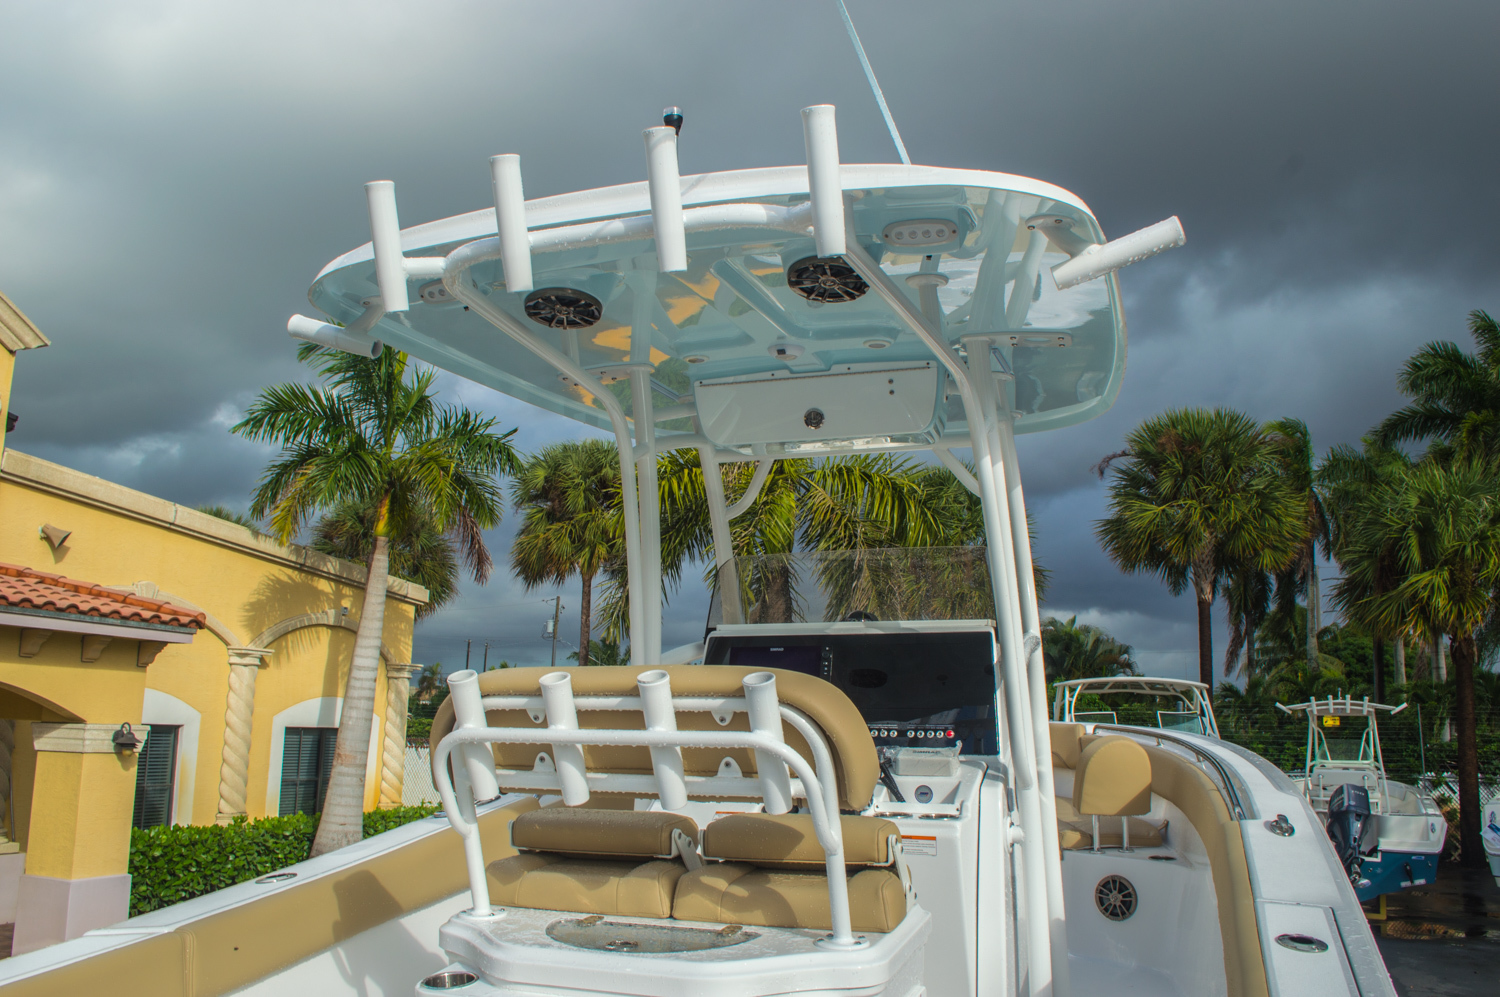 Thumbnail 11 for New 2016 Sportsman Heritage 251 Center Console boat for sale in West Palm Beach, FL